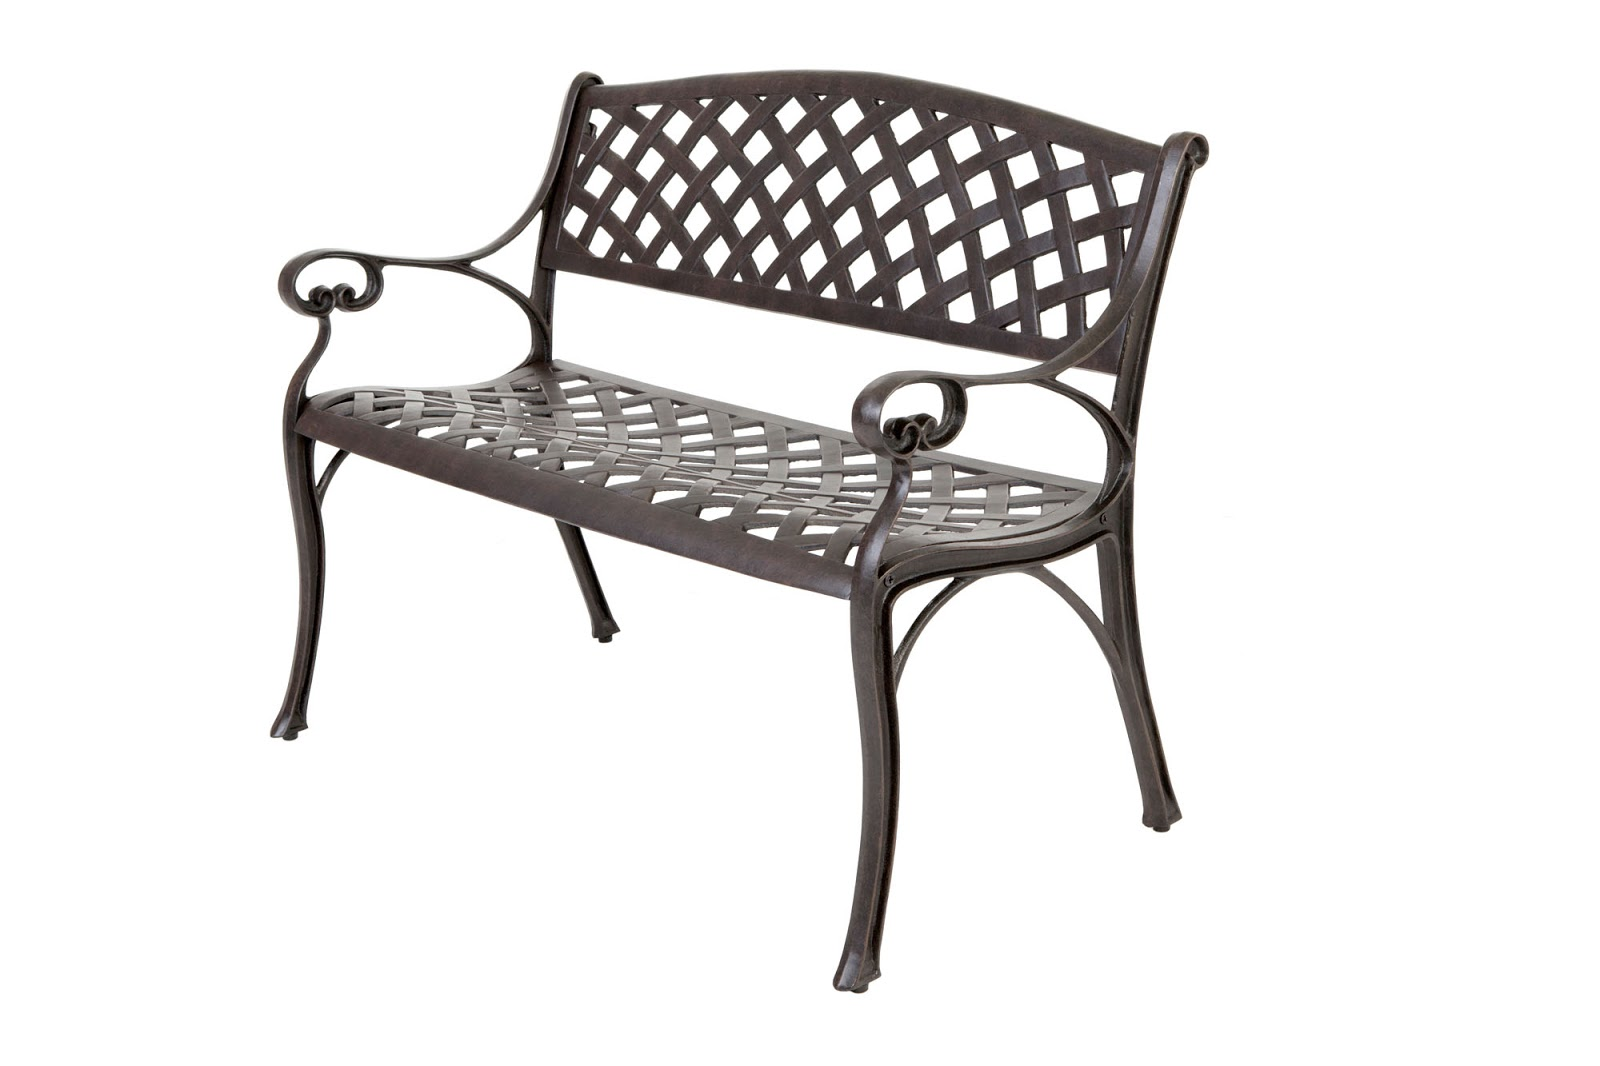 Outdoor Benches And Chairs Inspiration - pixelmari.com